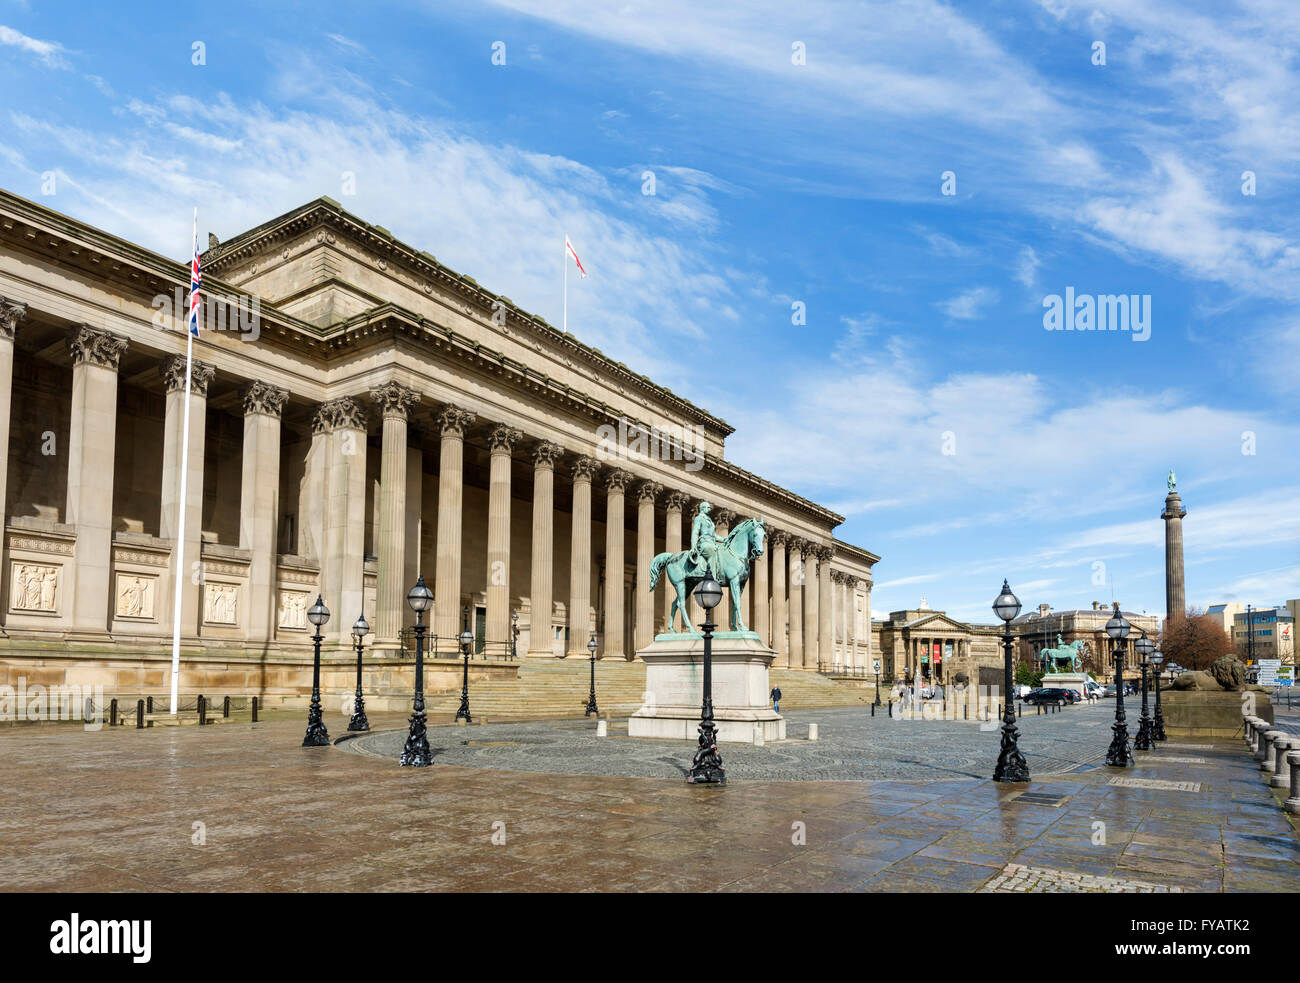 St George's Hall, Lime Street, Liverpool, Merseyside, England, UK - Stock Image